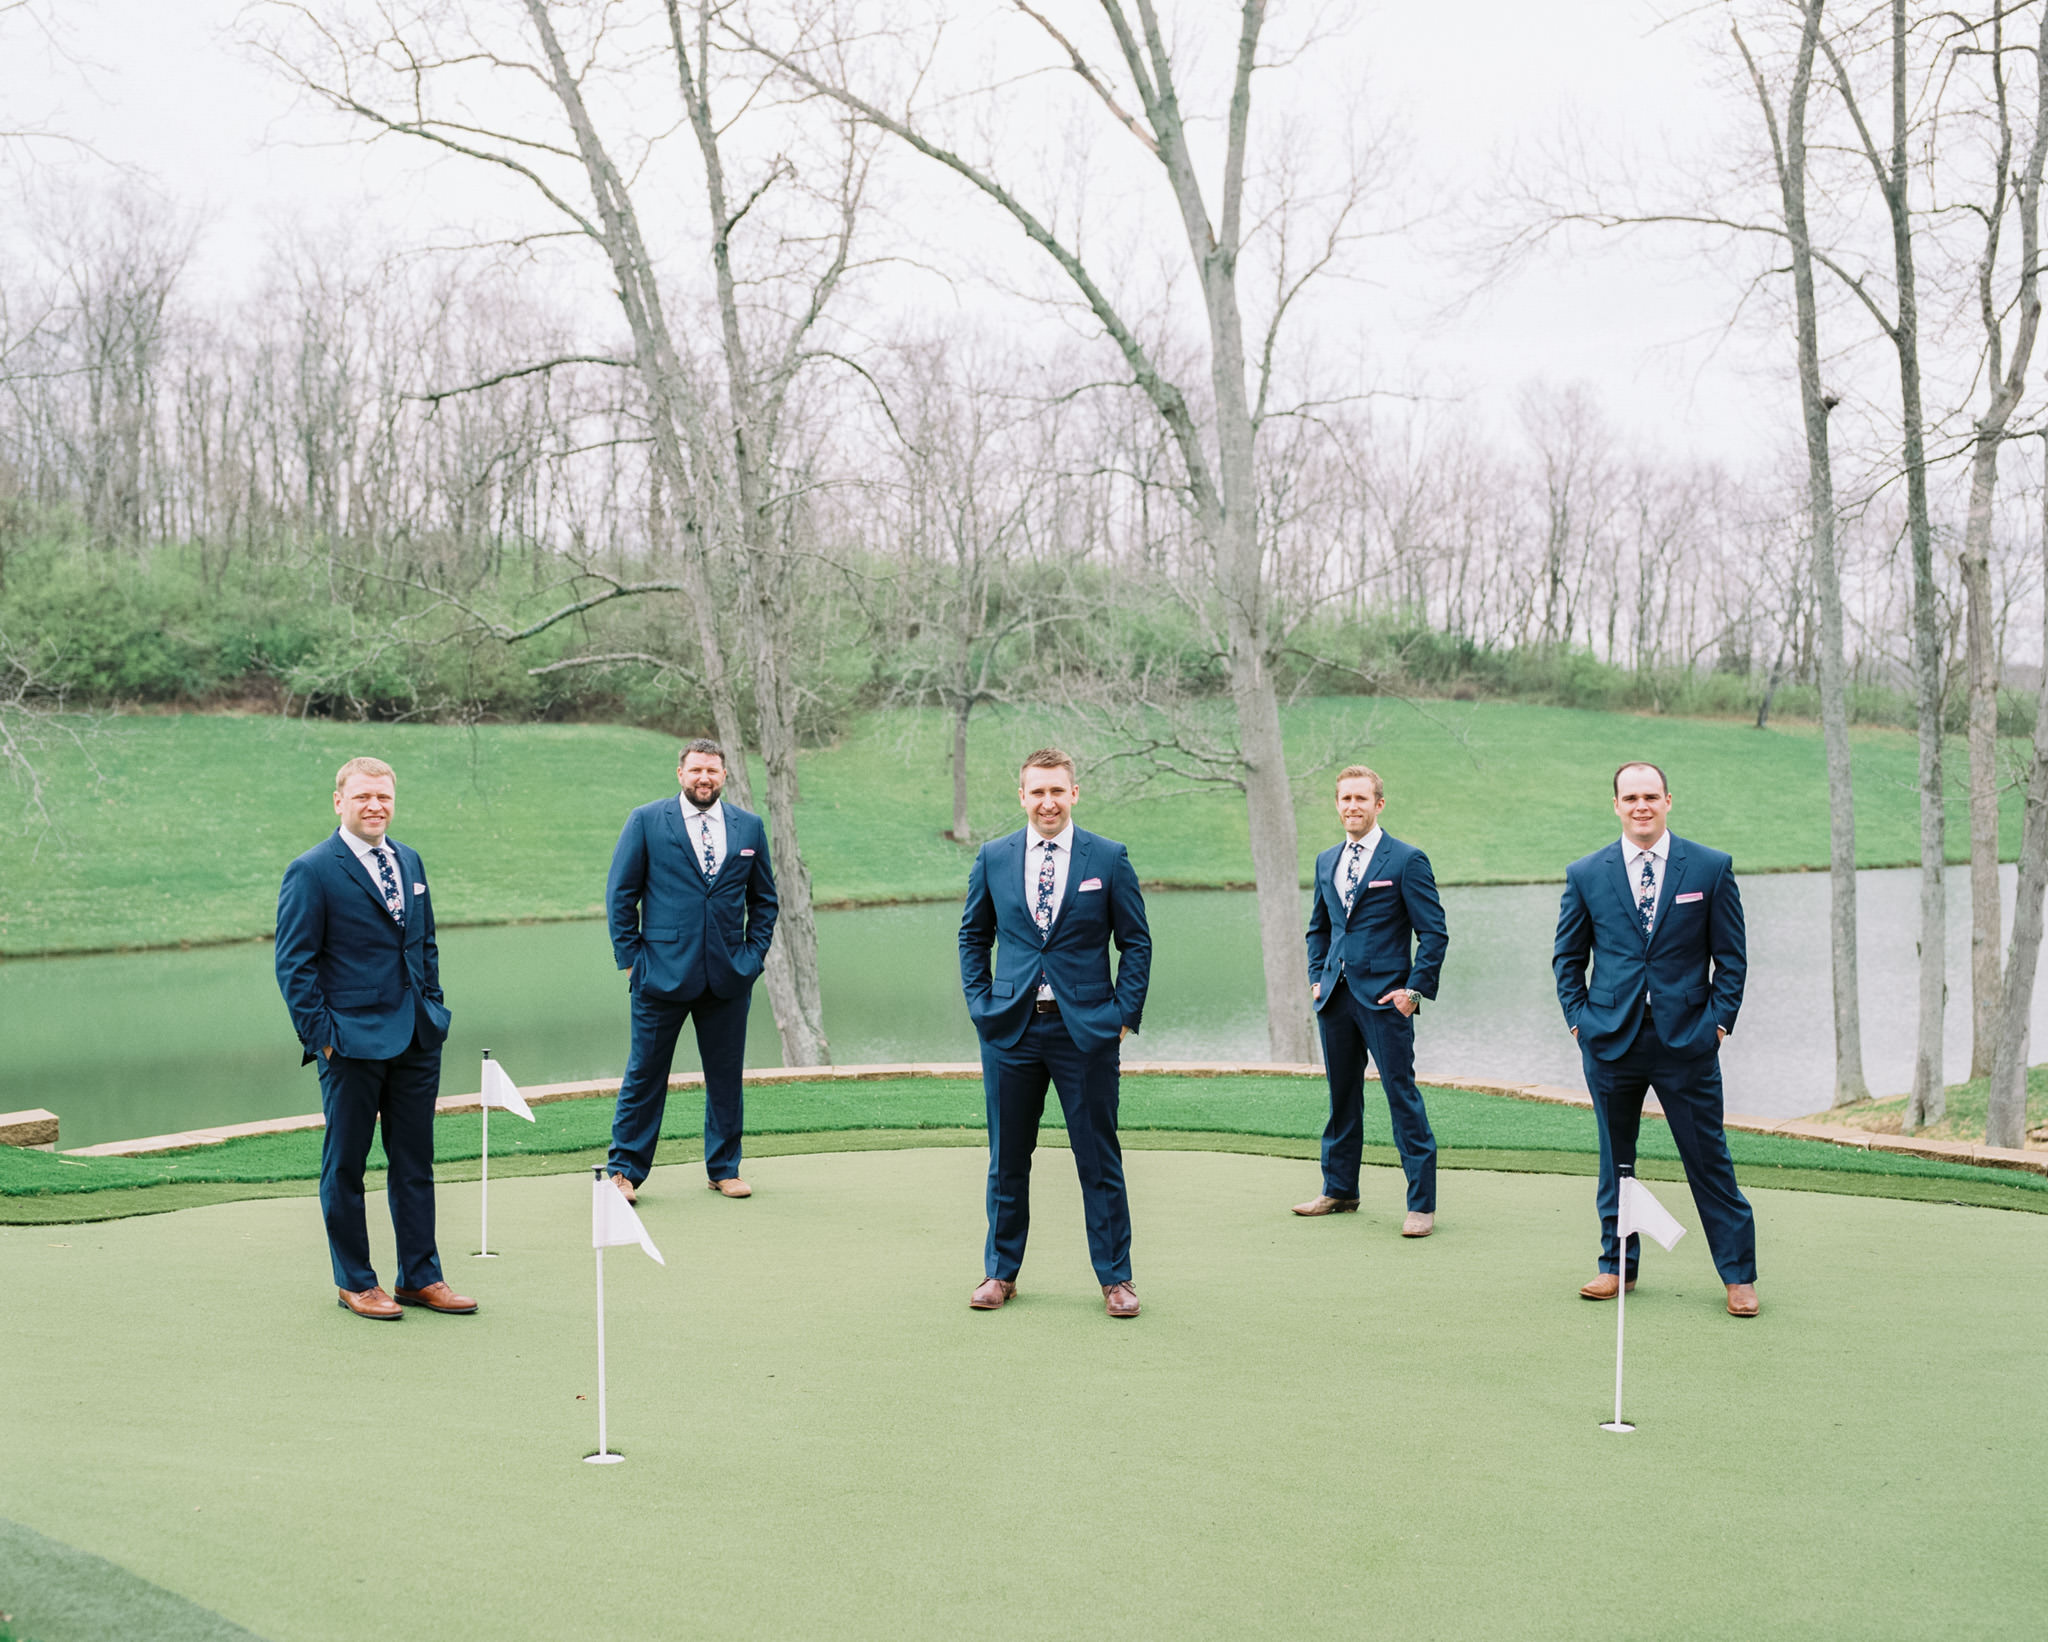 Image of groomsmen taken with Pentax 67 75mm f/2.8 AL lens on Pentax 67